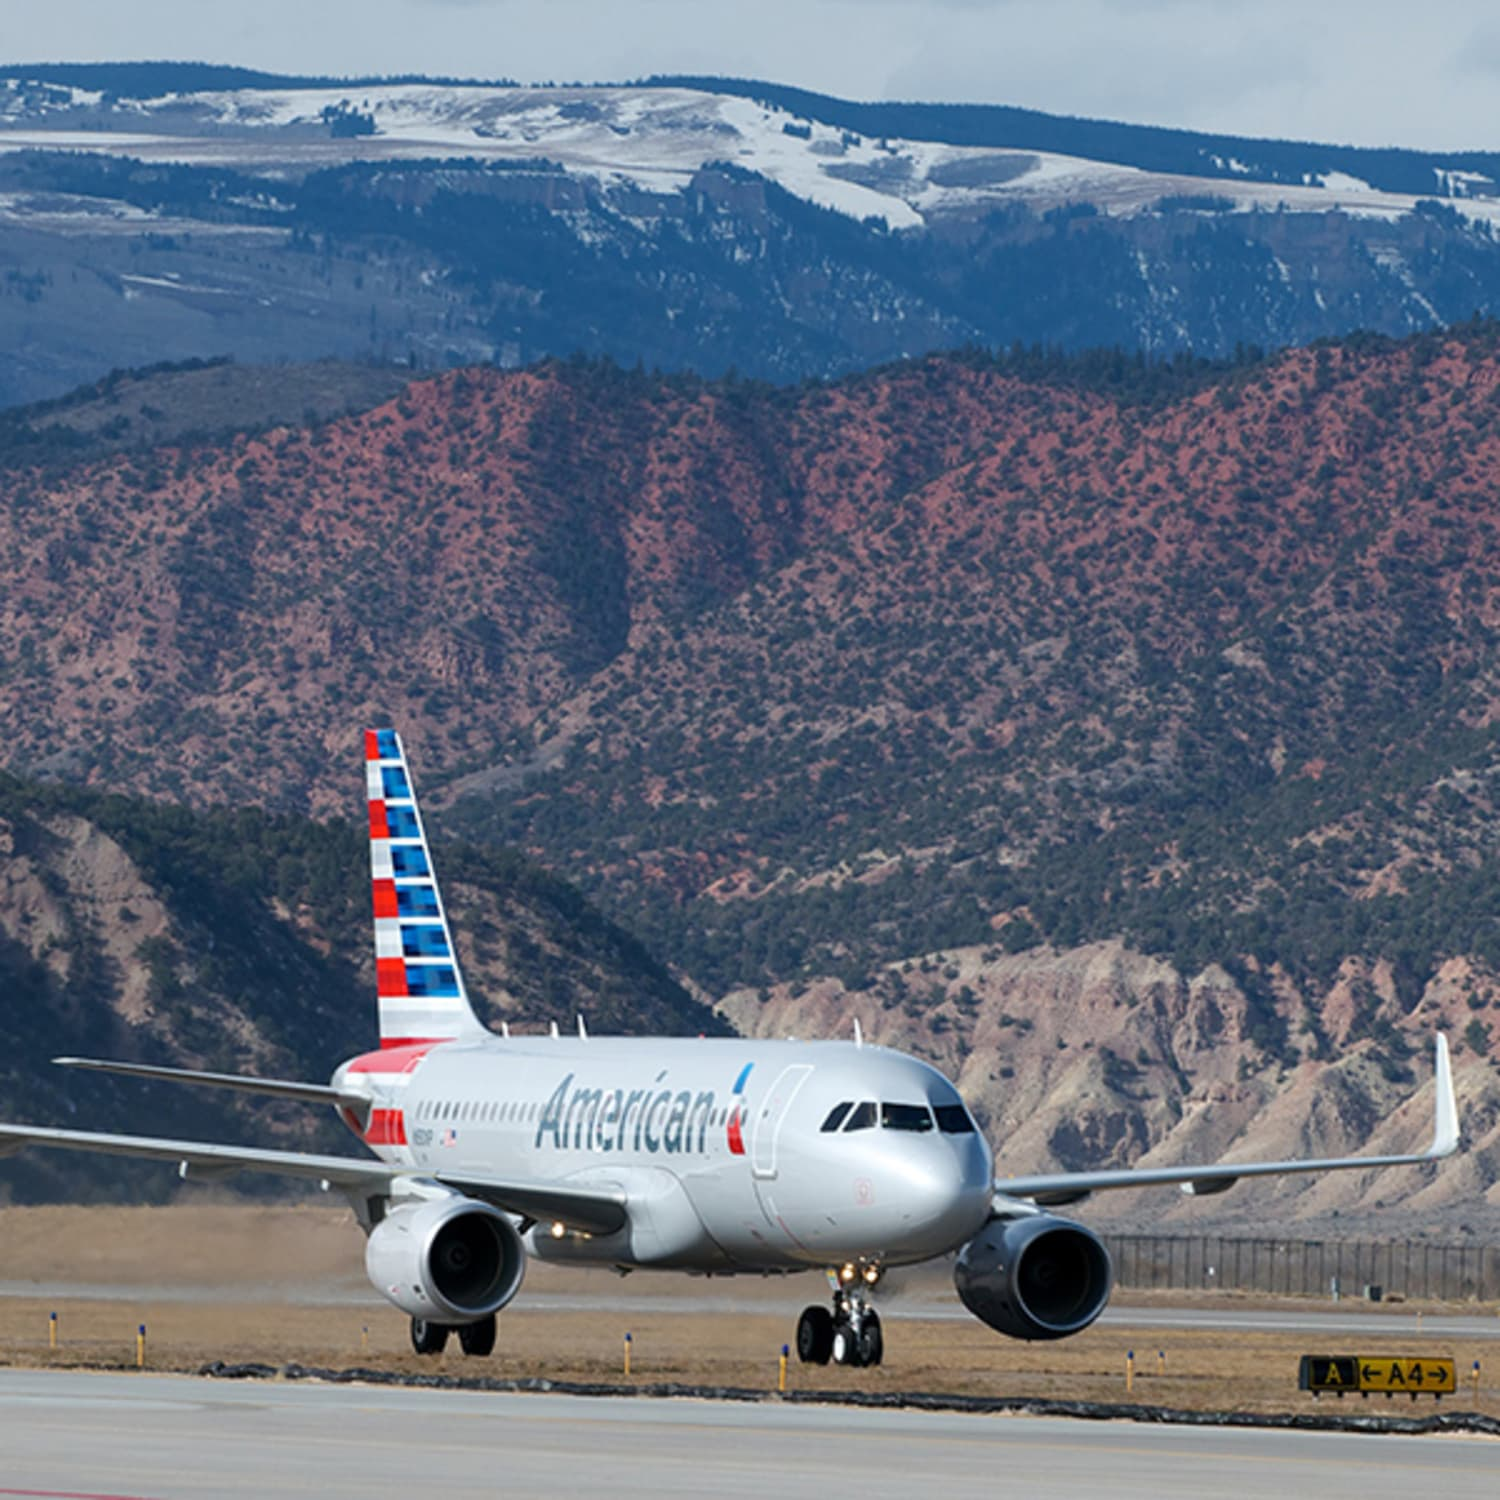 Vail Plan your Trip Eagle Airport New Image